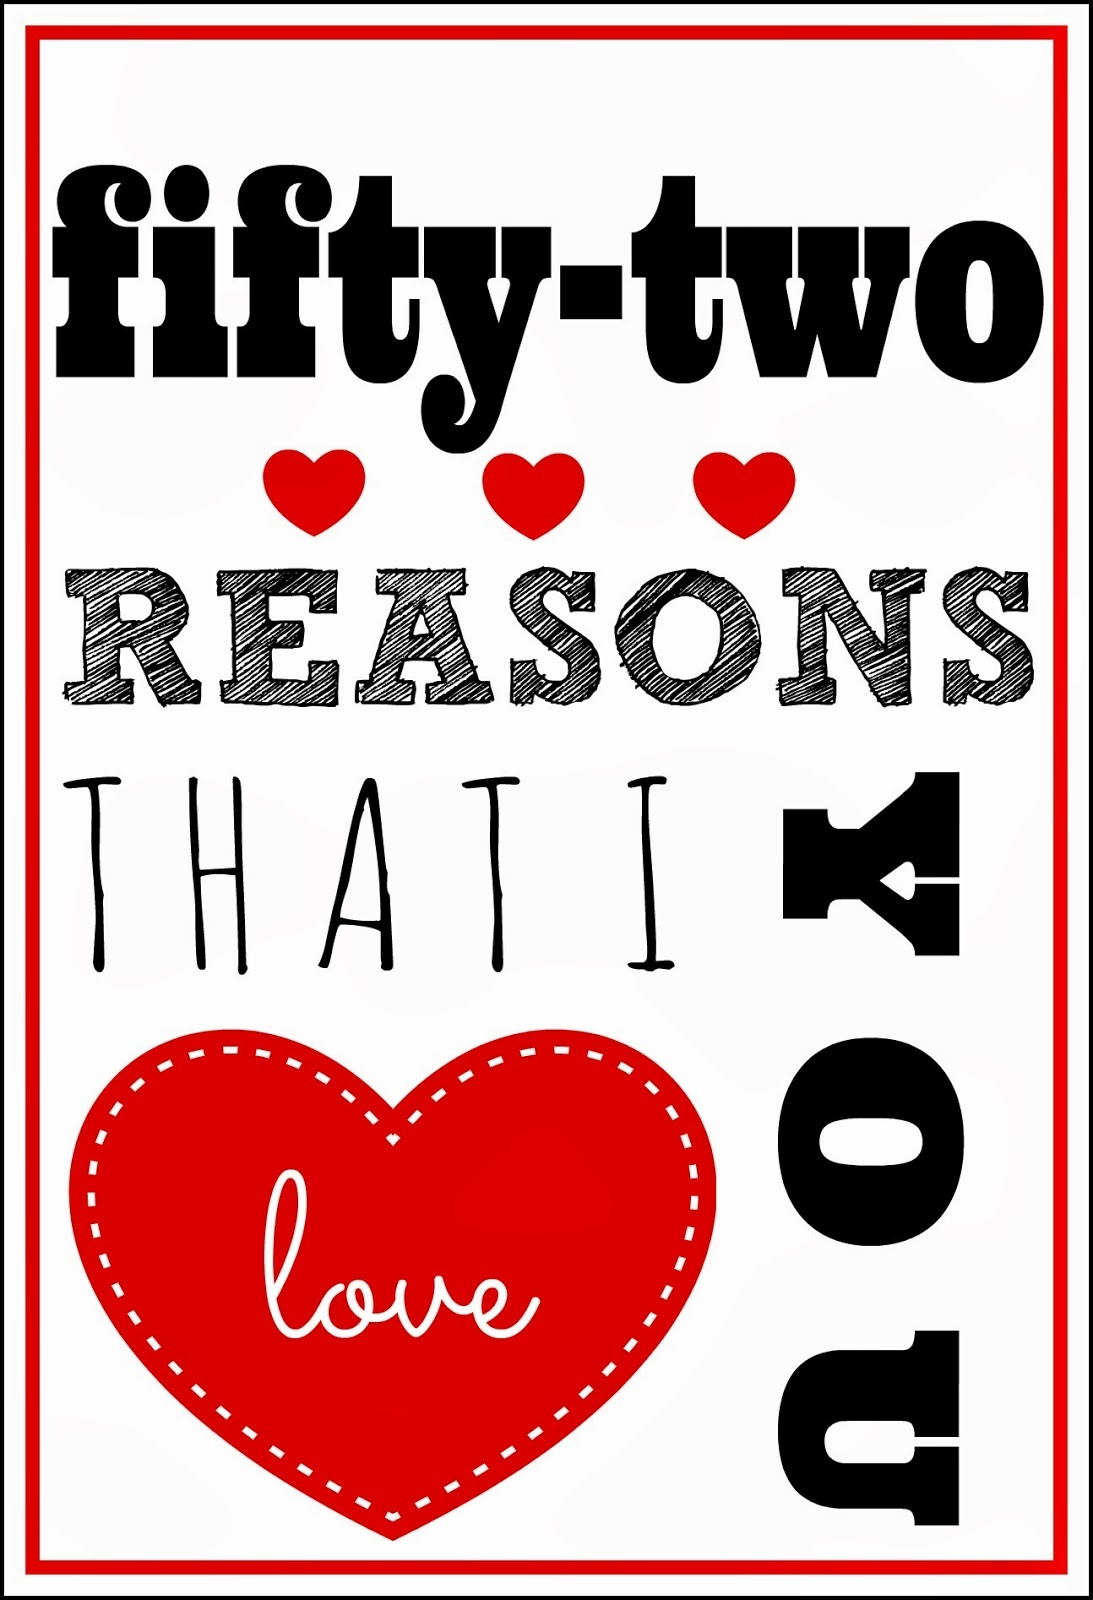 Larissa Another Day: 52 Reasons I Love You Printable (A Pinteresting - 52 Reasons Why I Love You Free Printable Template